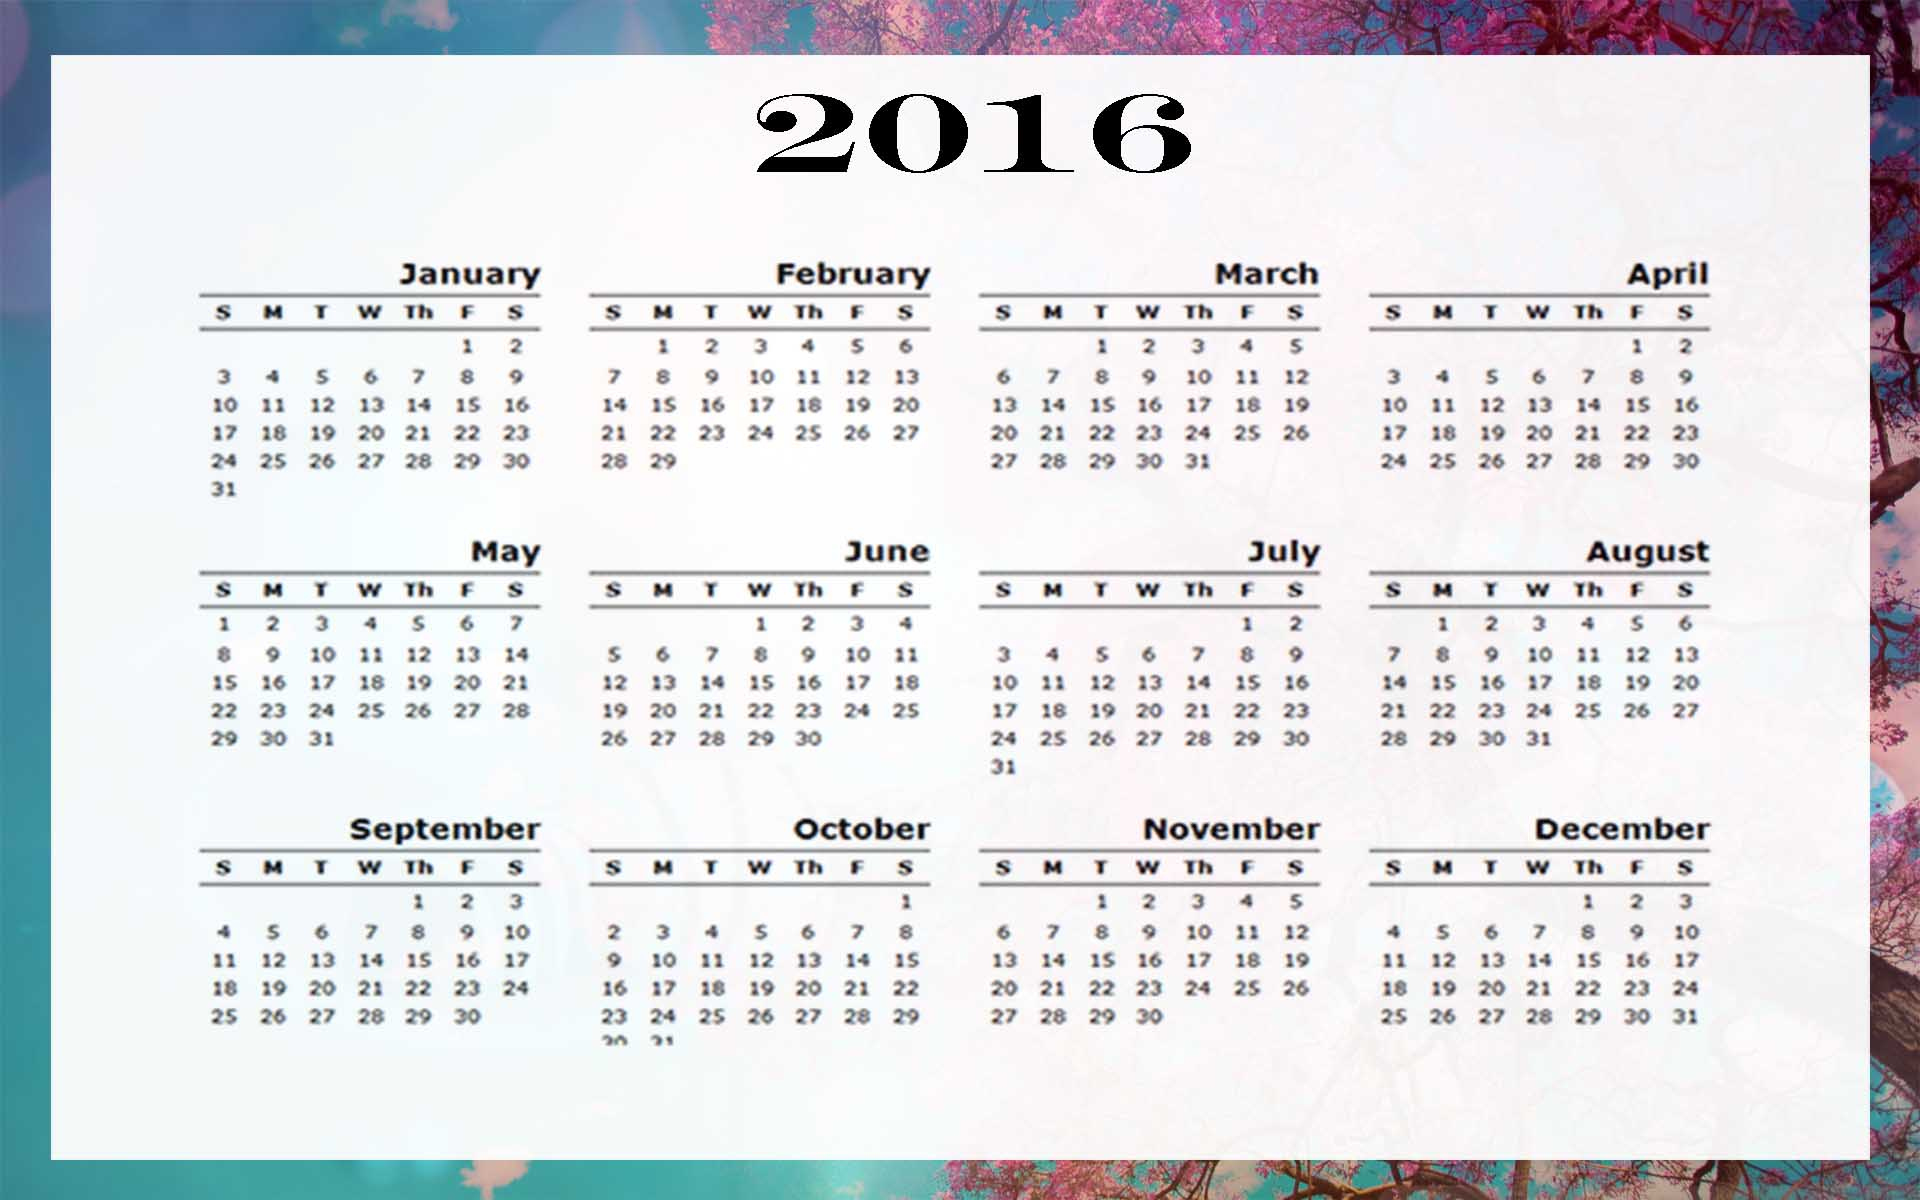 conflict calendar template - 2016 calendar download